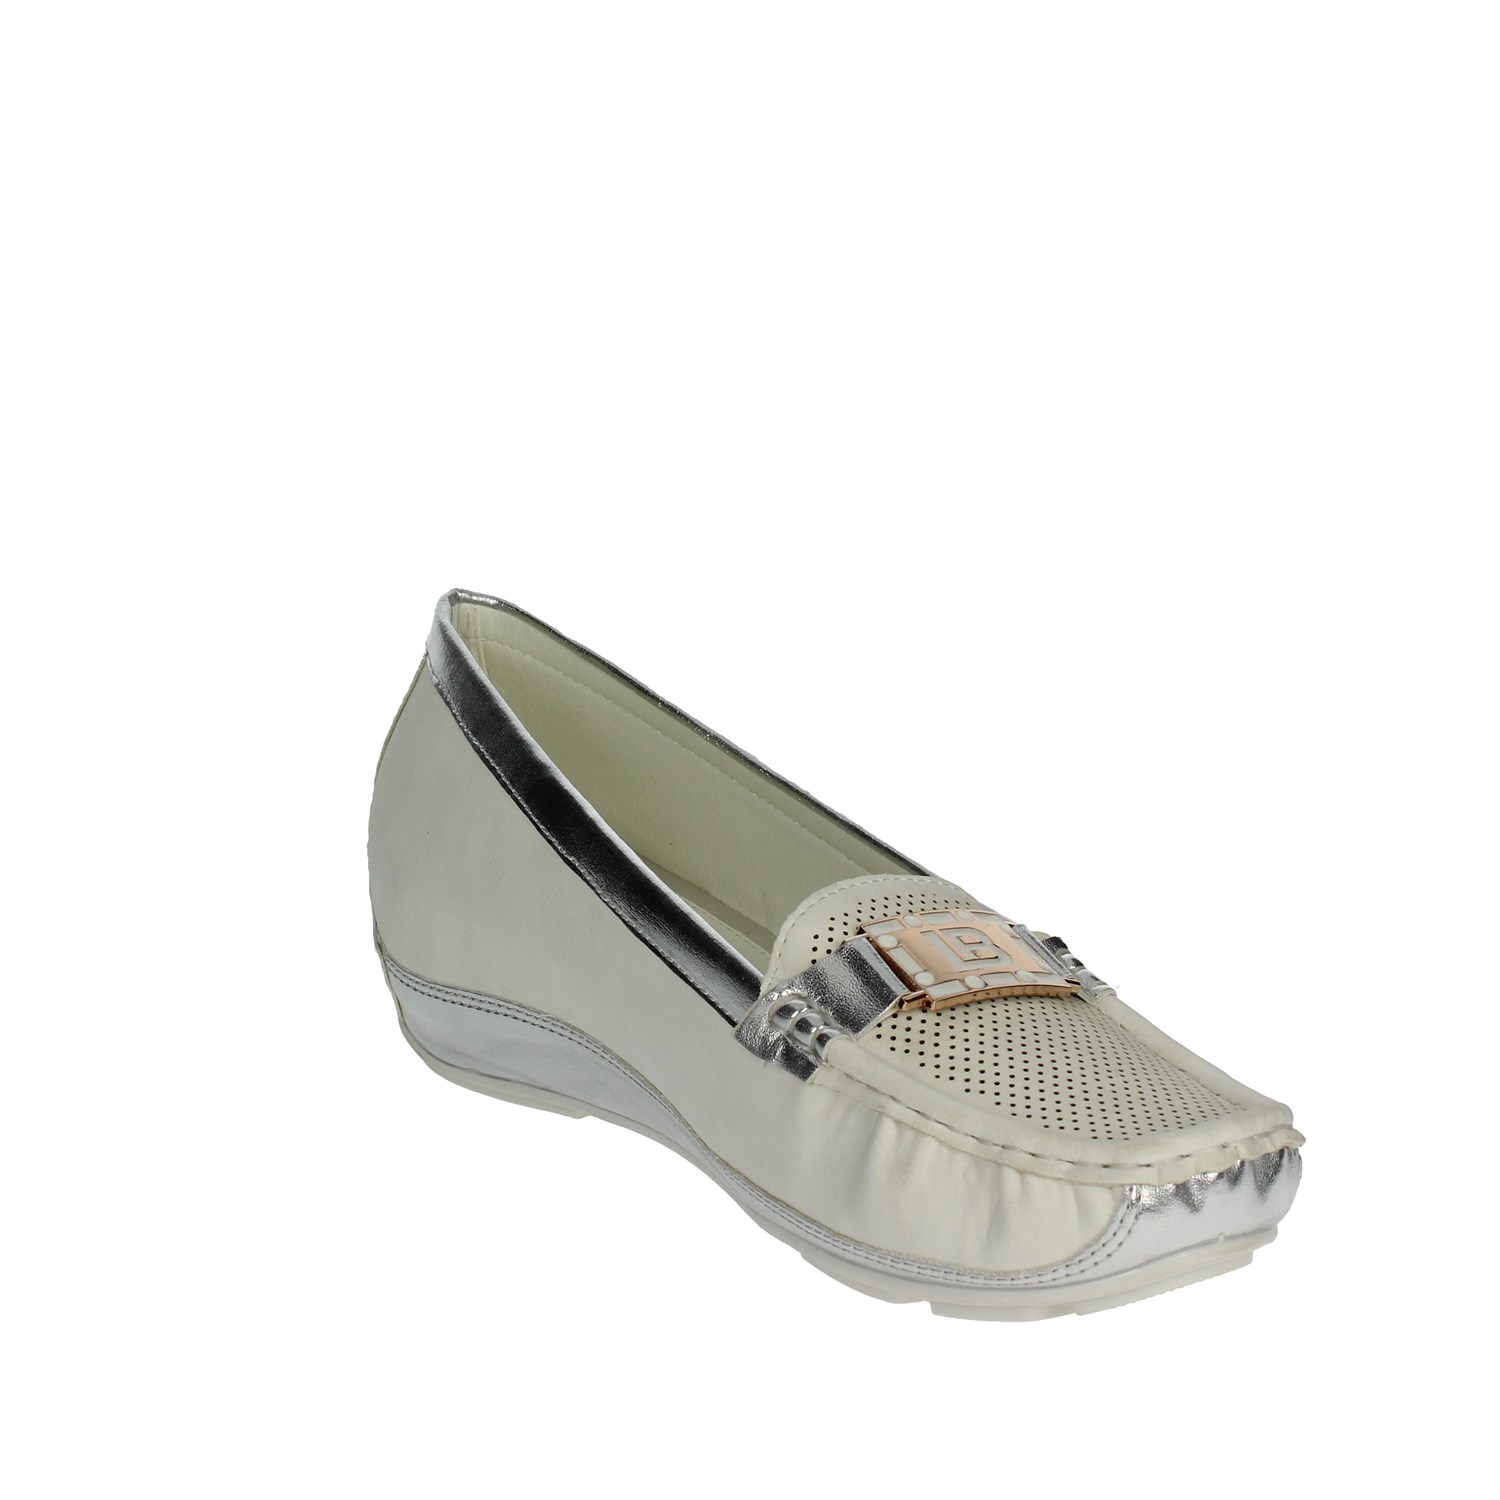 Laura Biagiotti 727 White//Silver Moccasin Women Spring//Summer